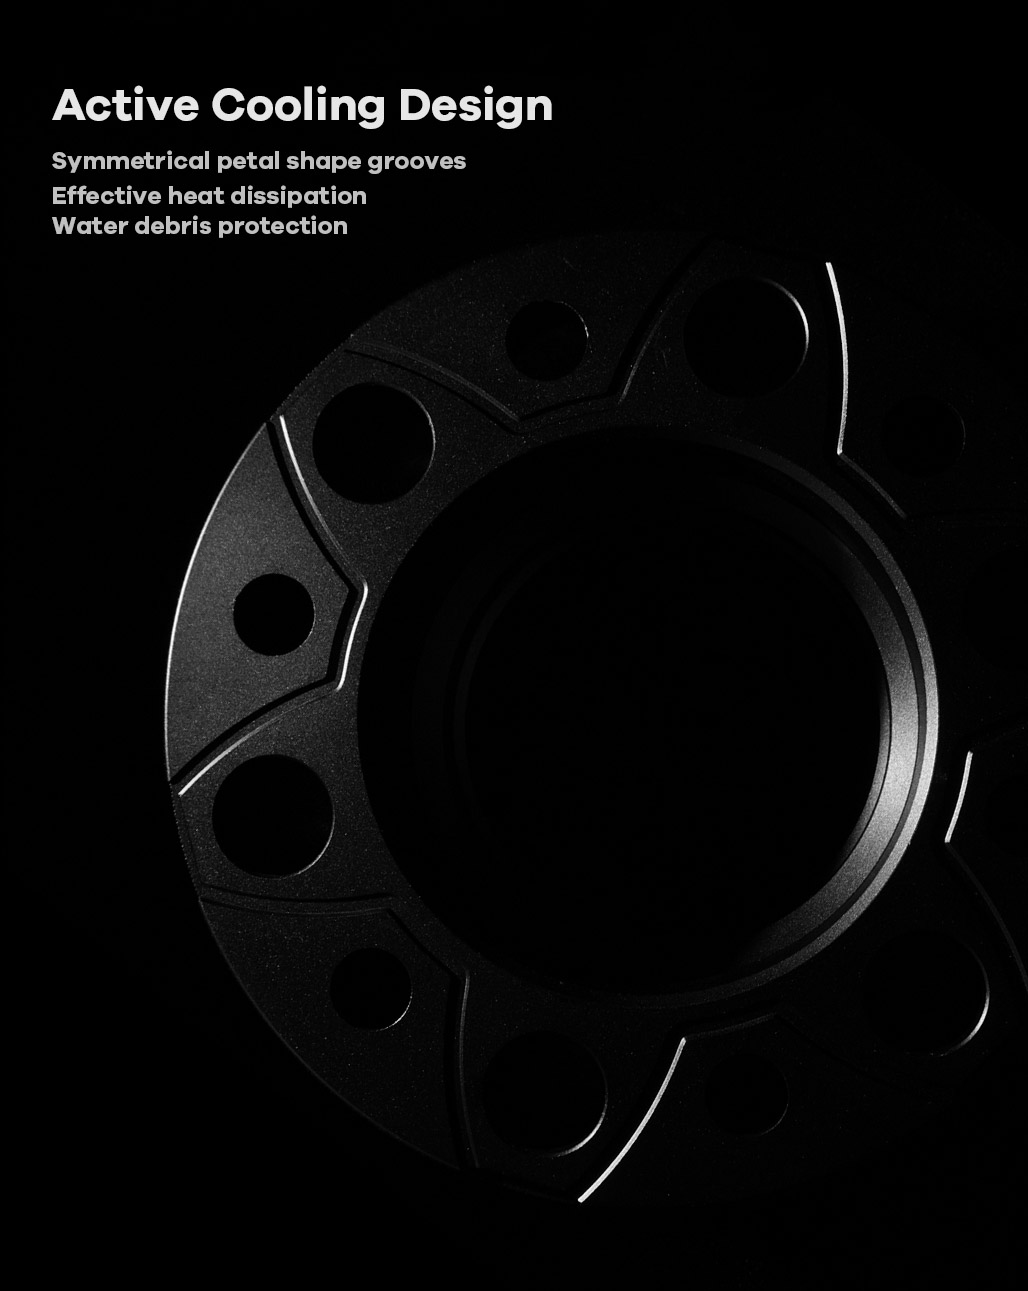 BONOSS-forged-active-cooling-wheel-spacer-6X139.7-100-M14X1.5-by-lulu-3